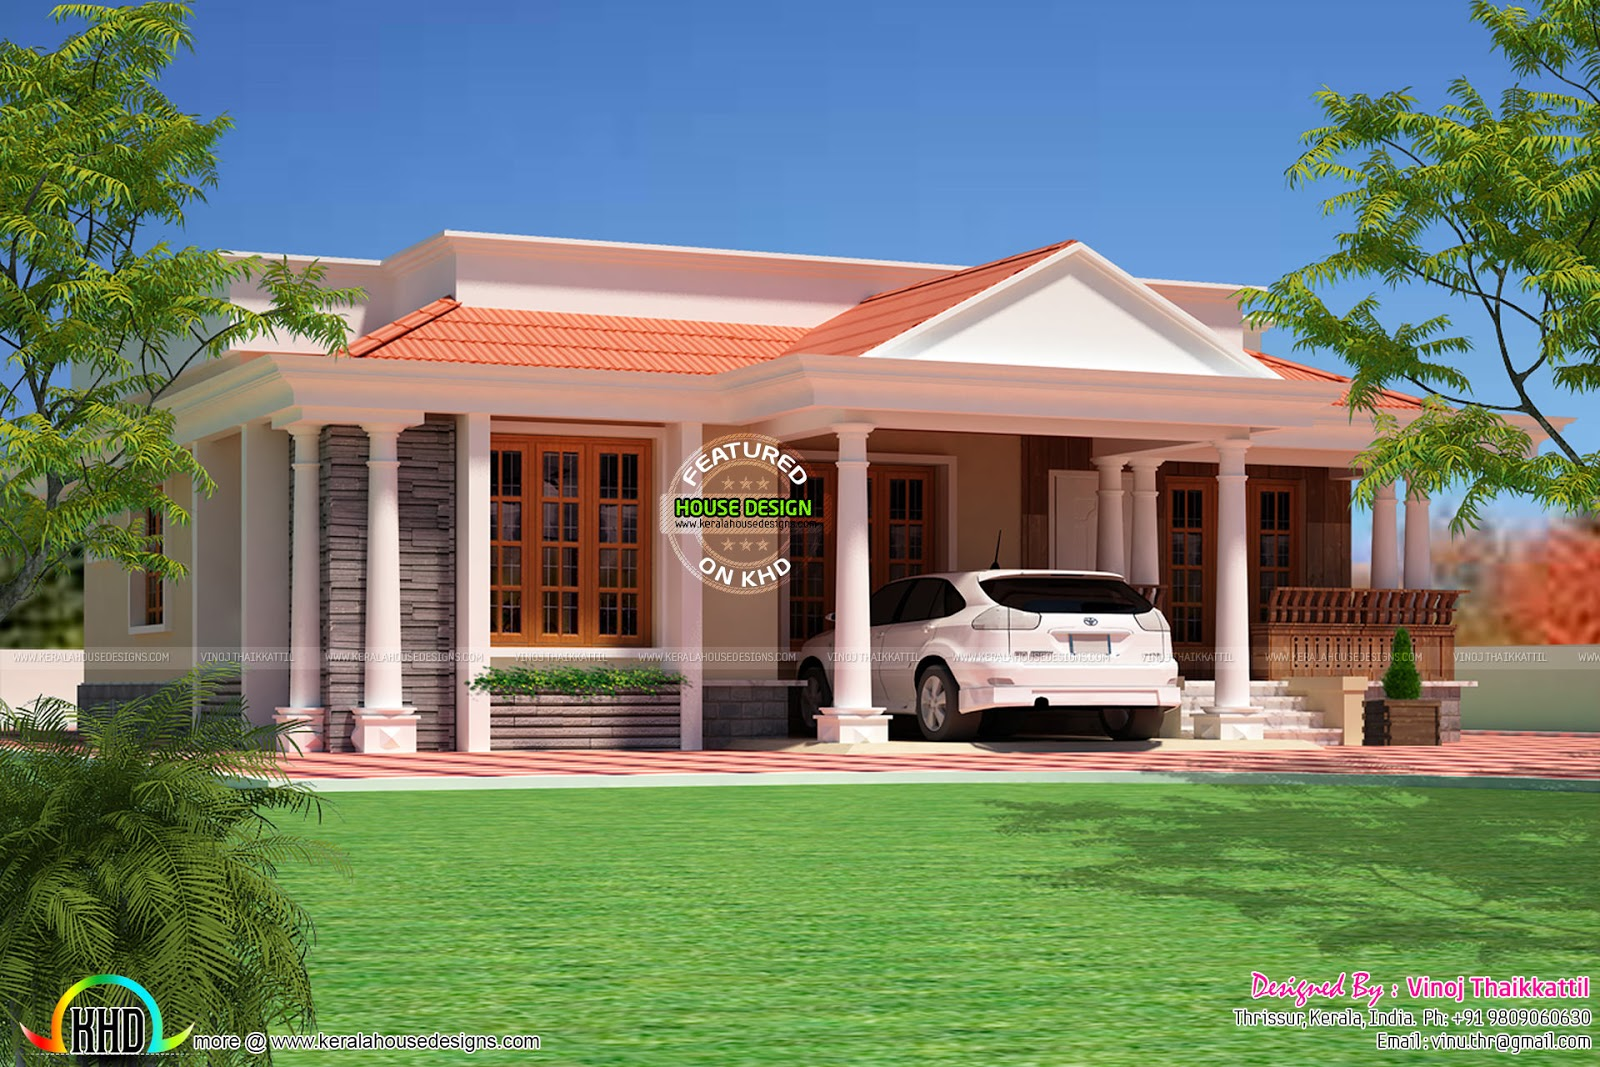 3 bed room home Kerala Traditional Design Kerala home design